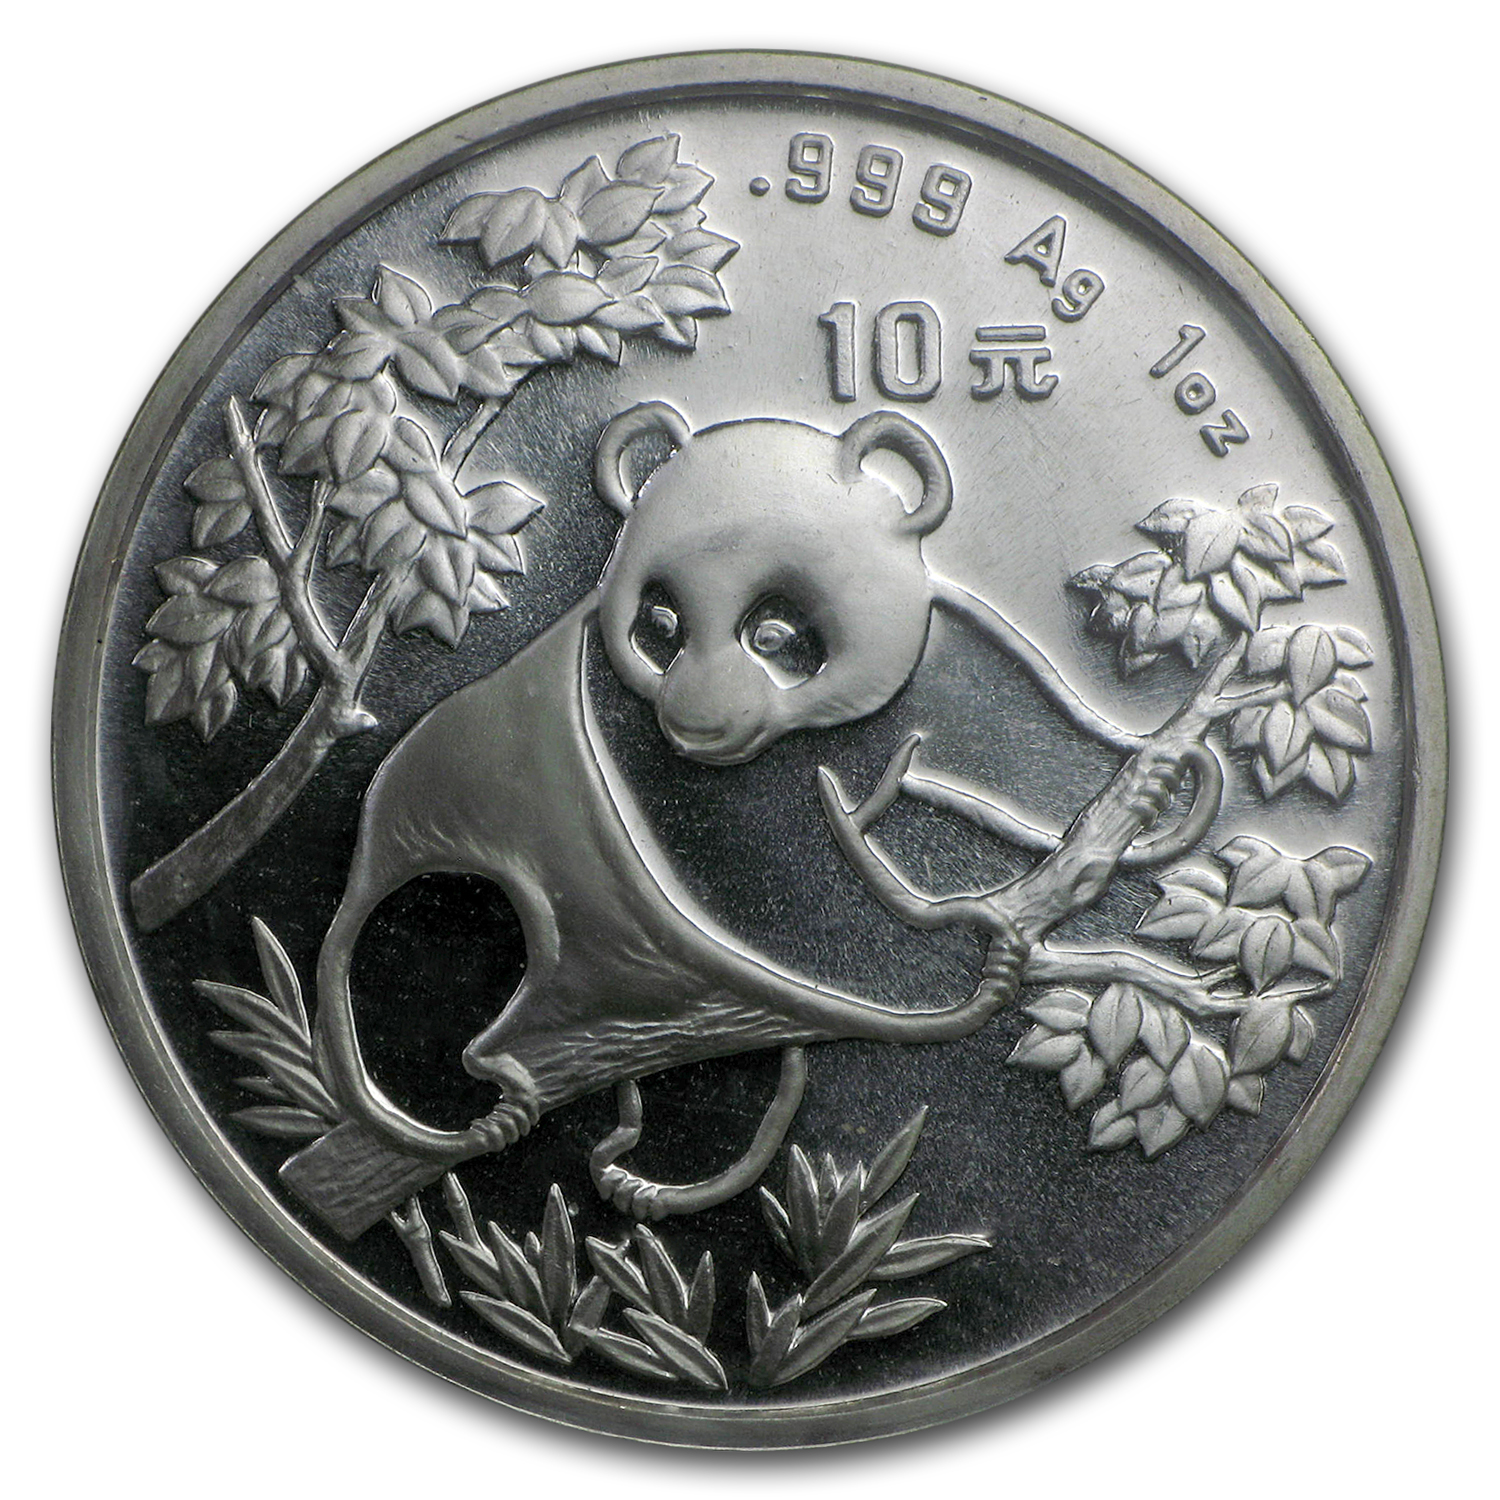 1992 1 oz Silver Chinese Panda - (Sealed) - Small Date